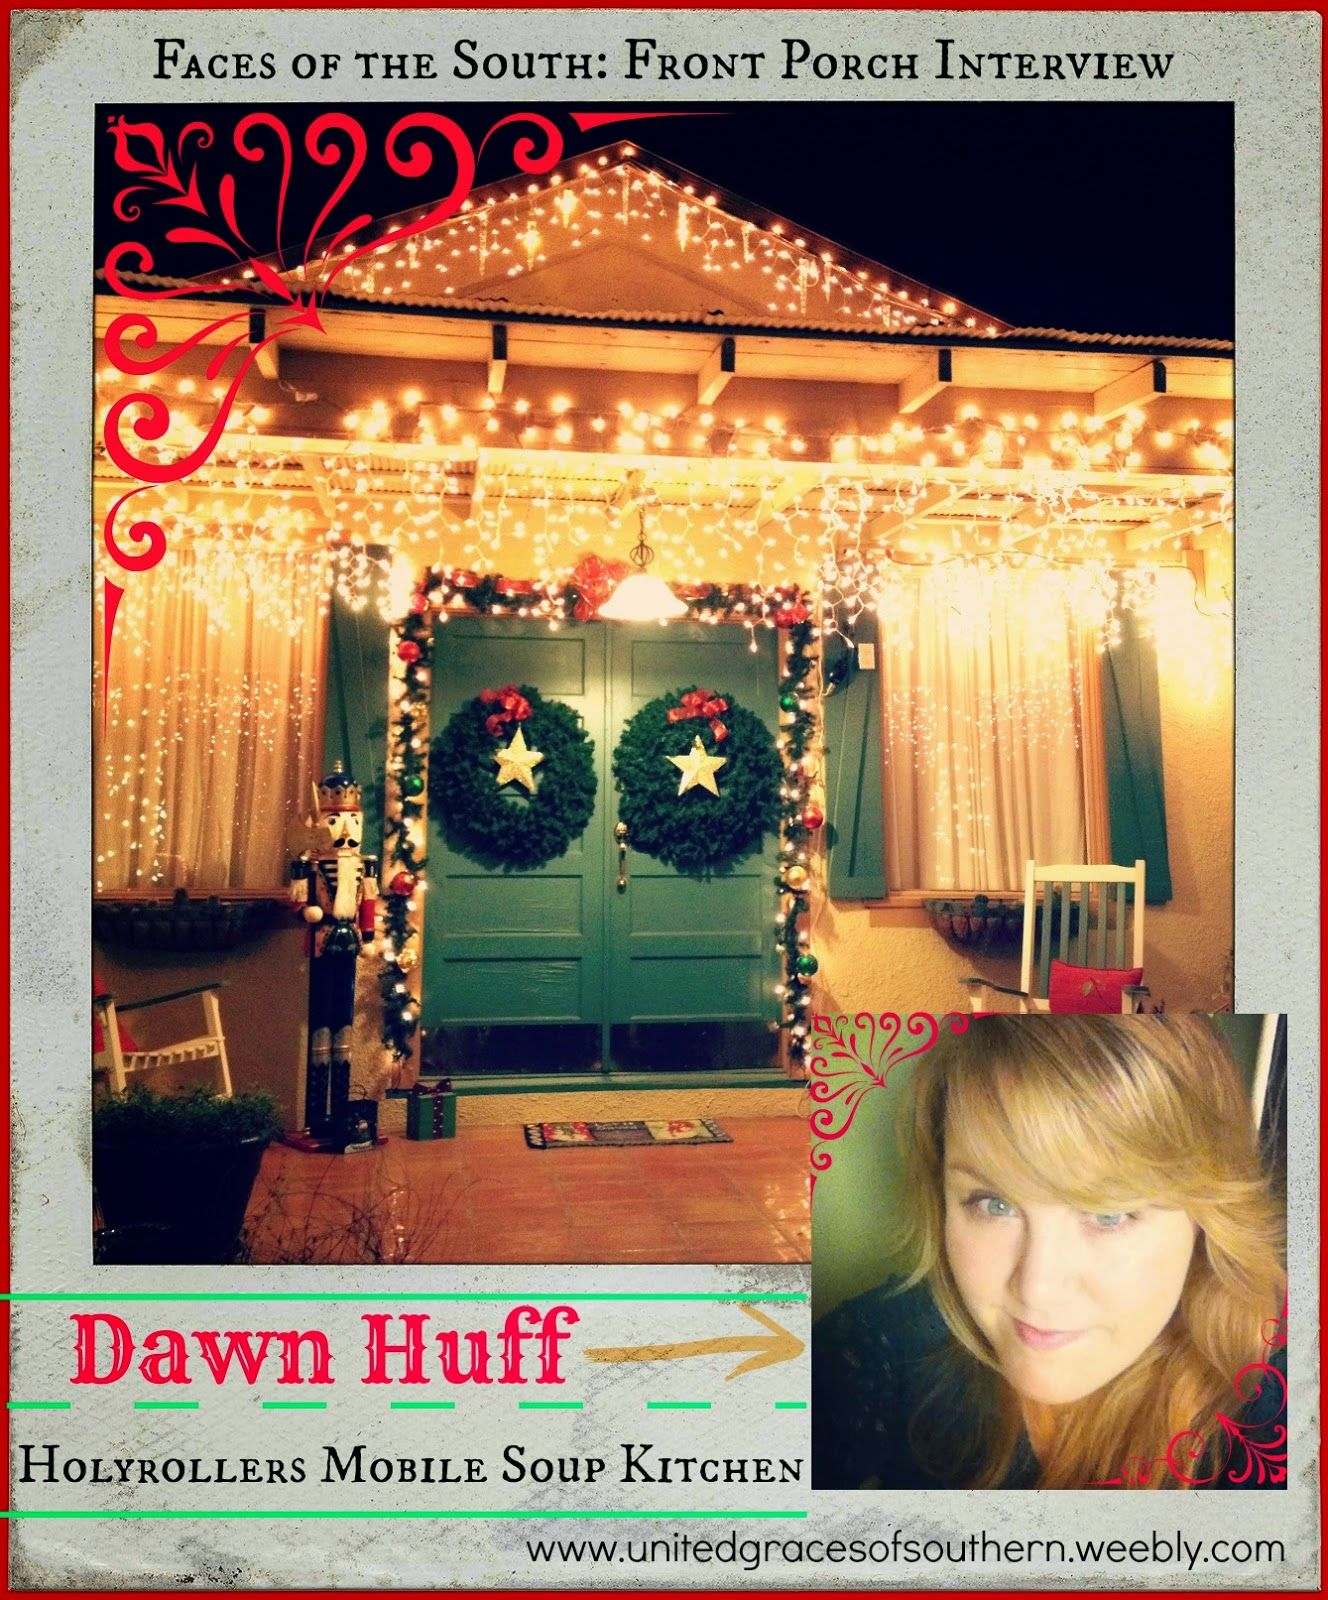 United Graces of Southern: Sunday Edition: Front Porch Interview with Dawn Huff